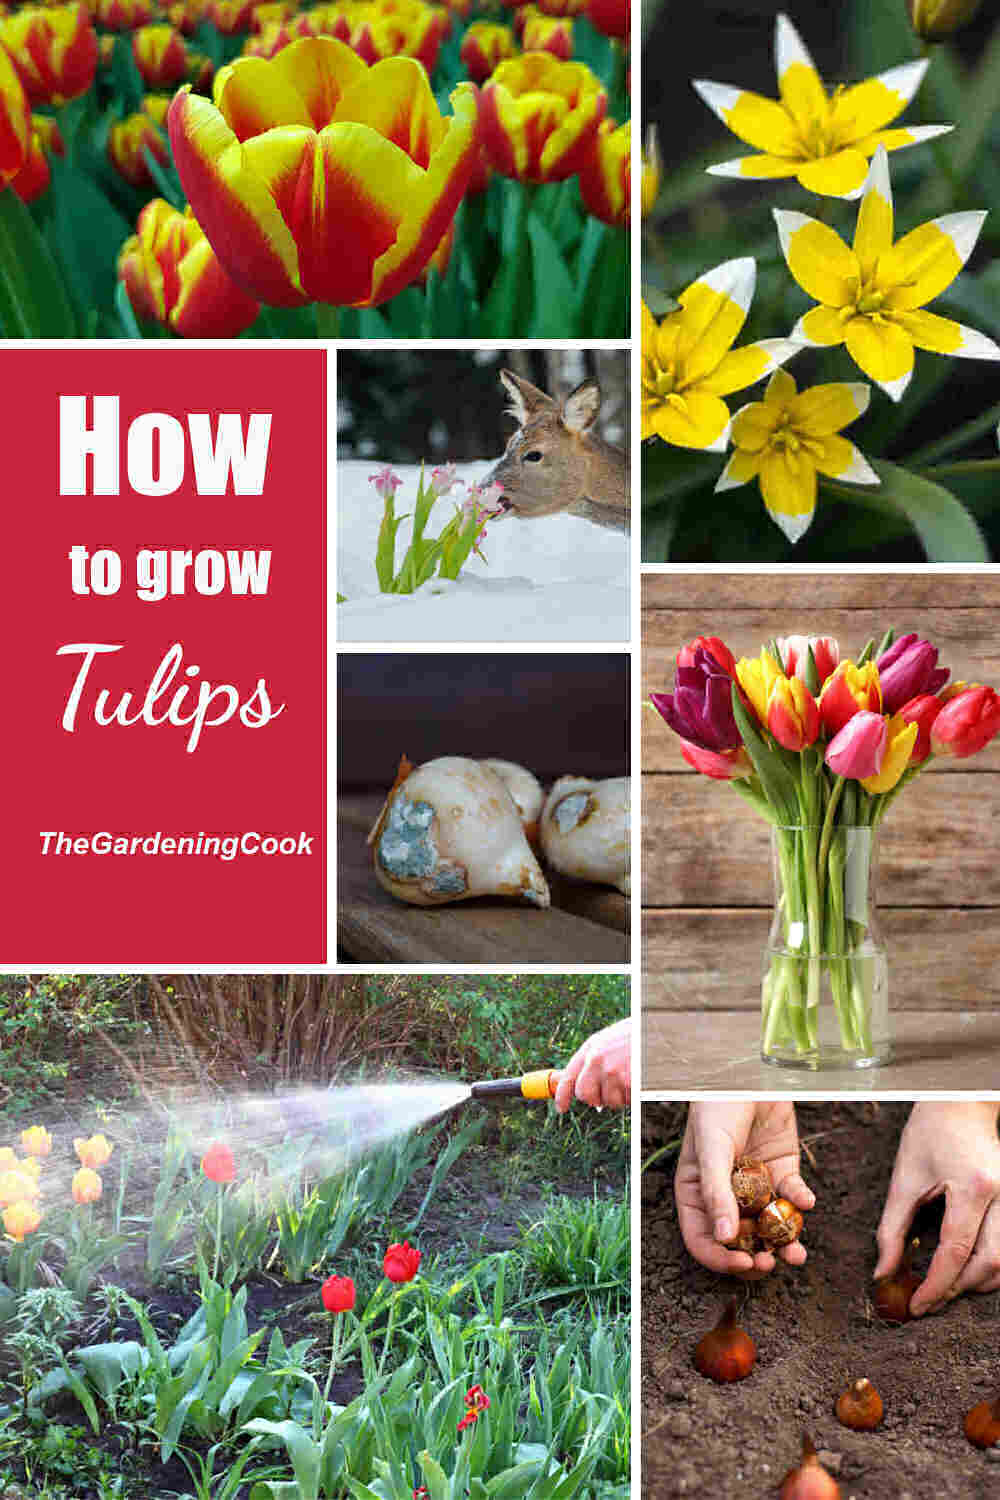 Collage with tulip flowers, deer and tulips, bulbs, watering tulips and words How to Grow tulips.